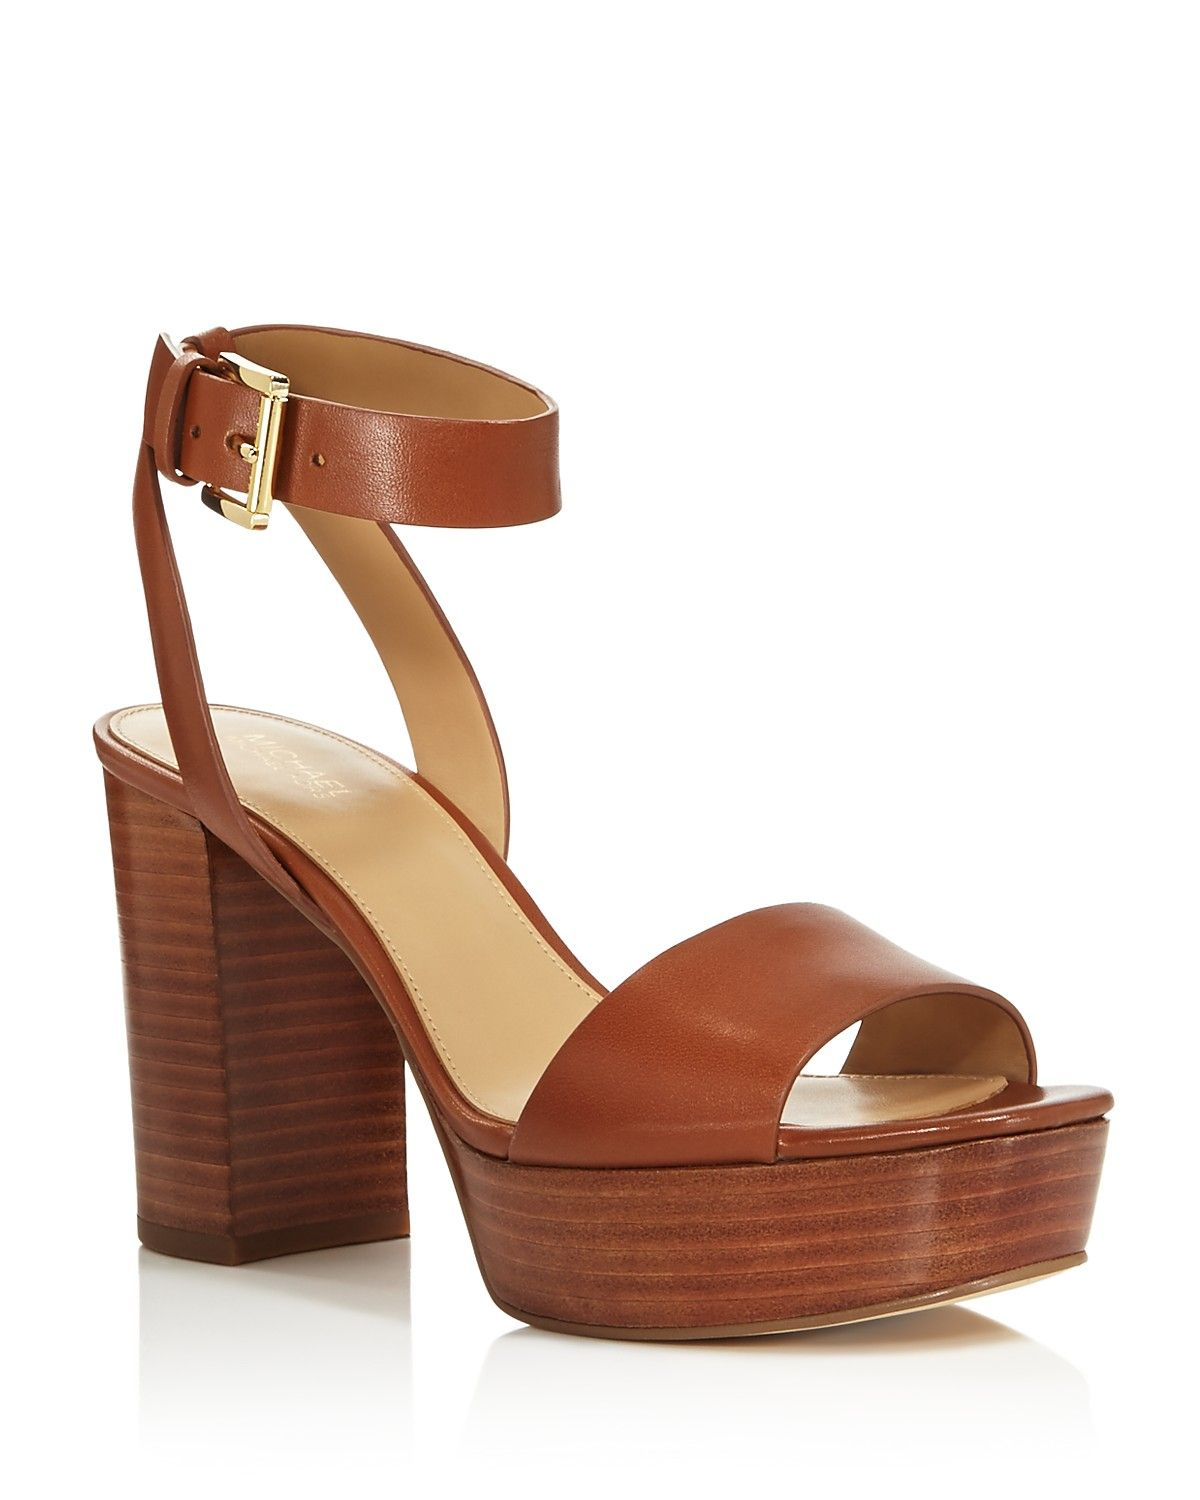 MICHAEL Michael Kors Leonora Open Toe Platform Sandals - 100% Bloomingdale's Exclusive